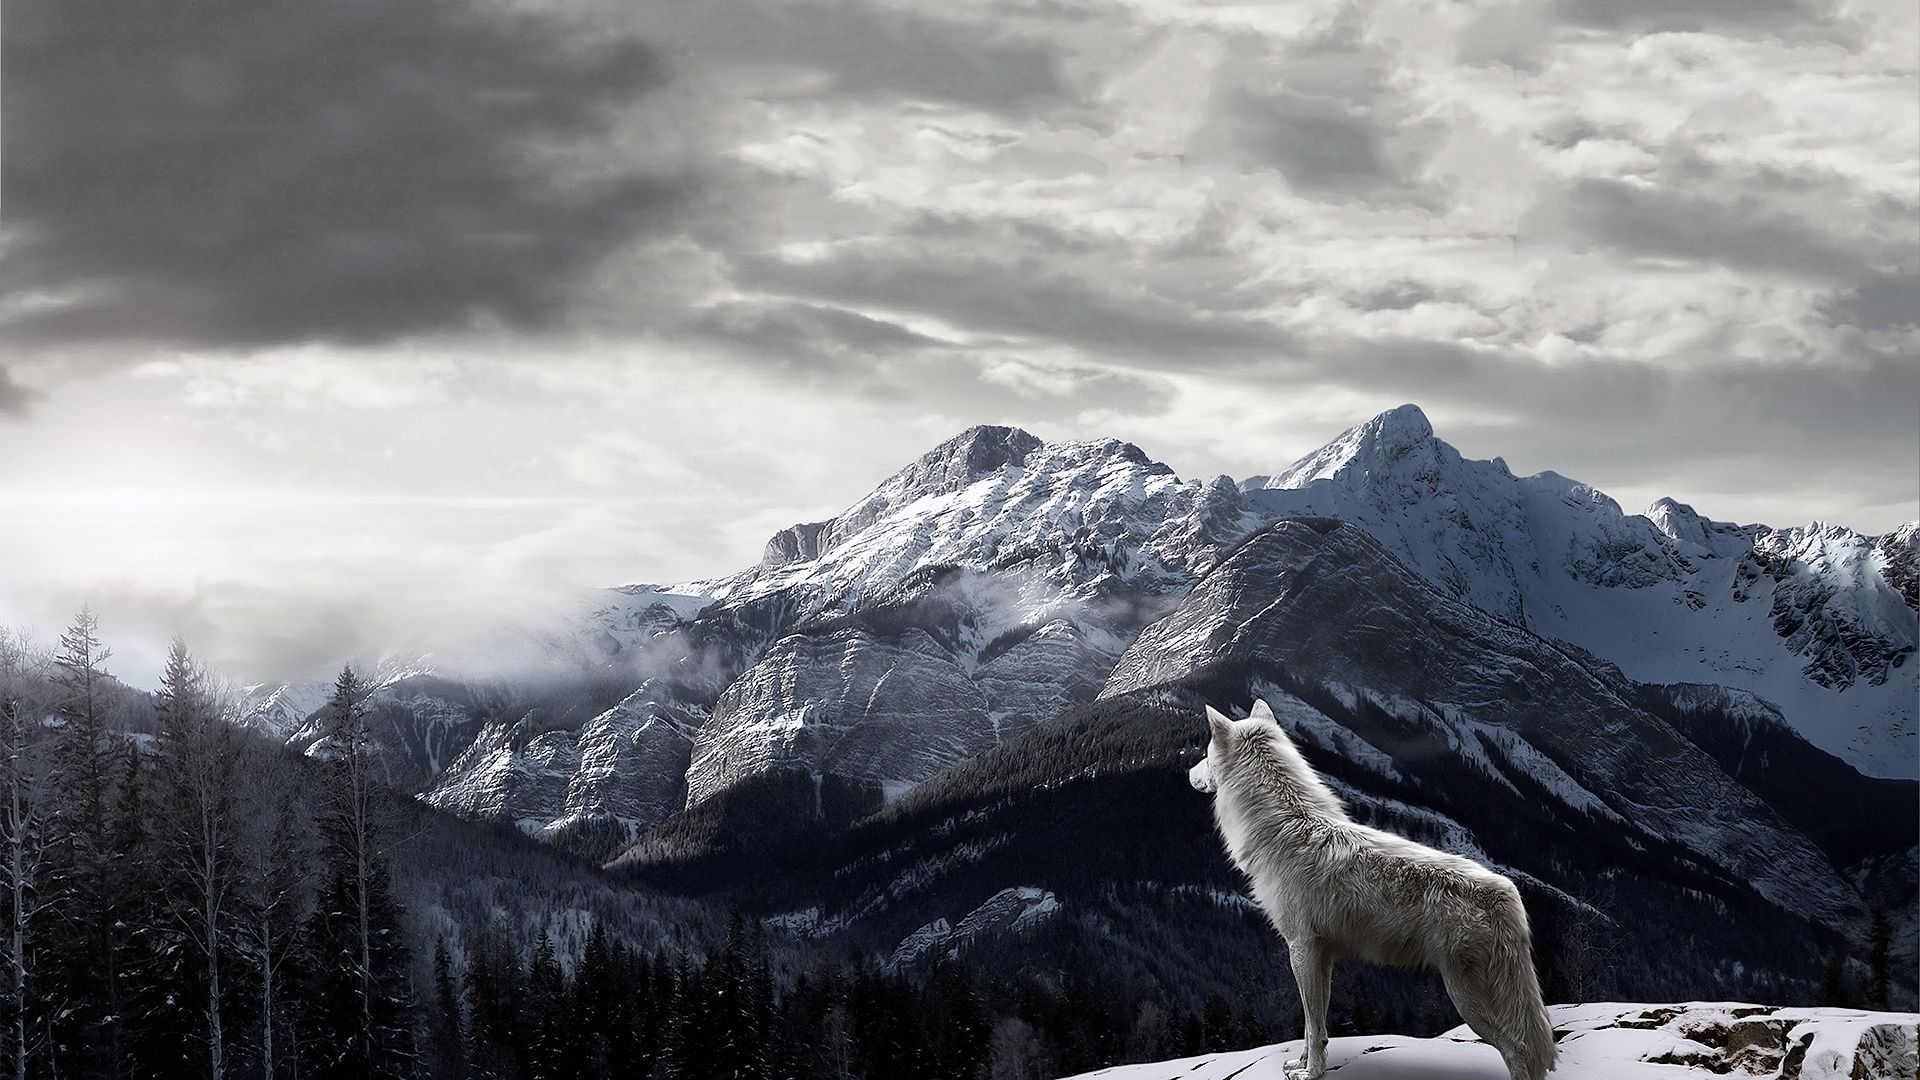 Iphone wallpaper tumblr wolf - Wolf Hd Wallpapers Backgrounds Wallpaper